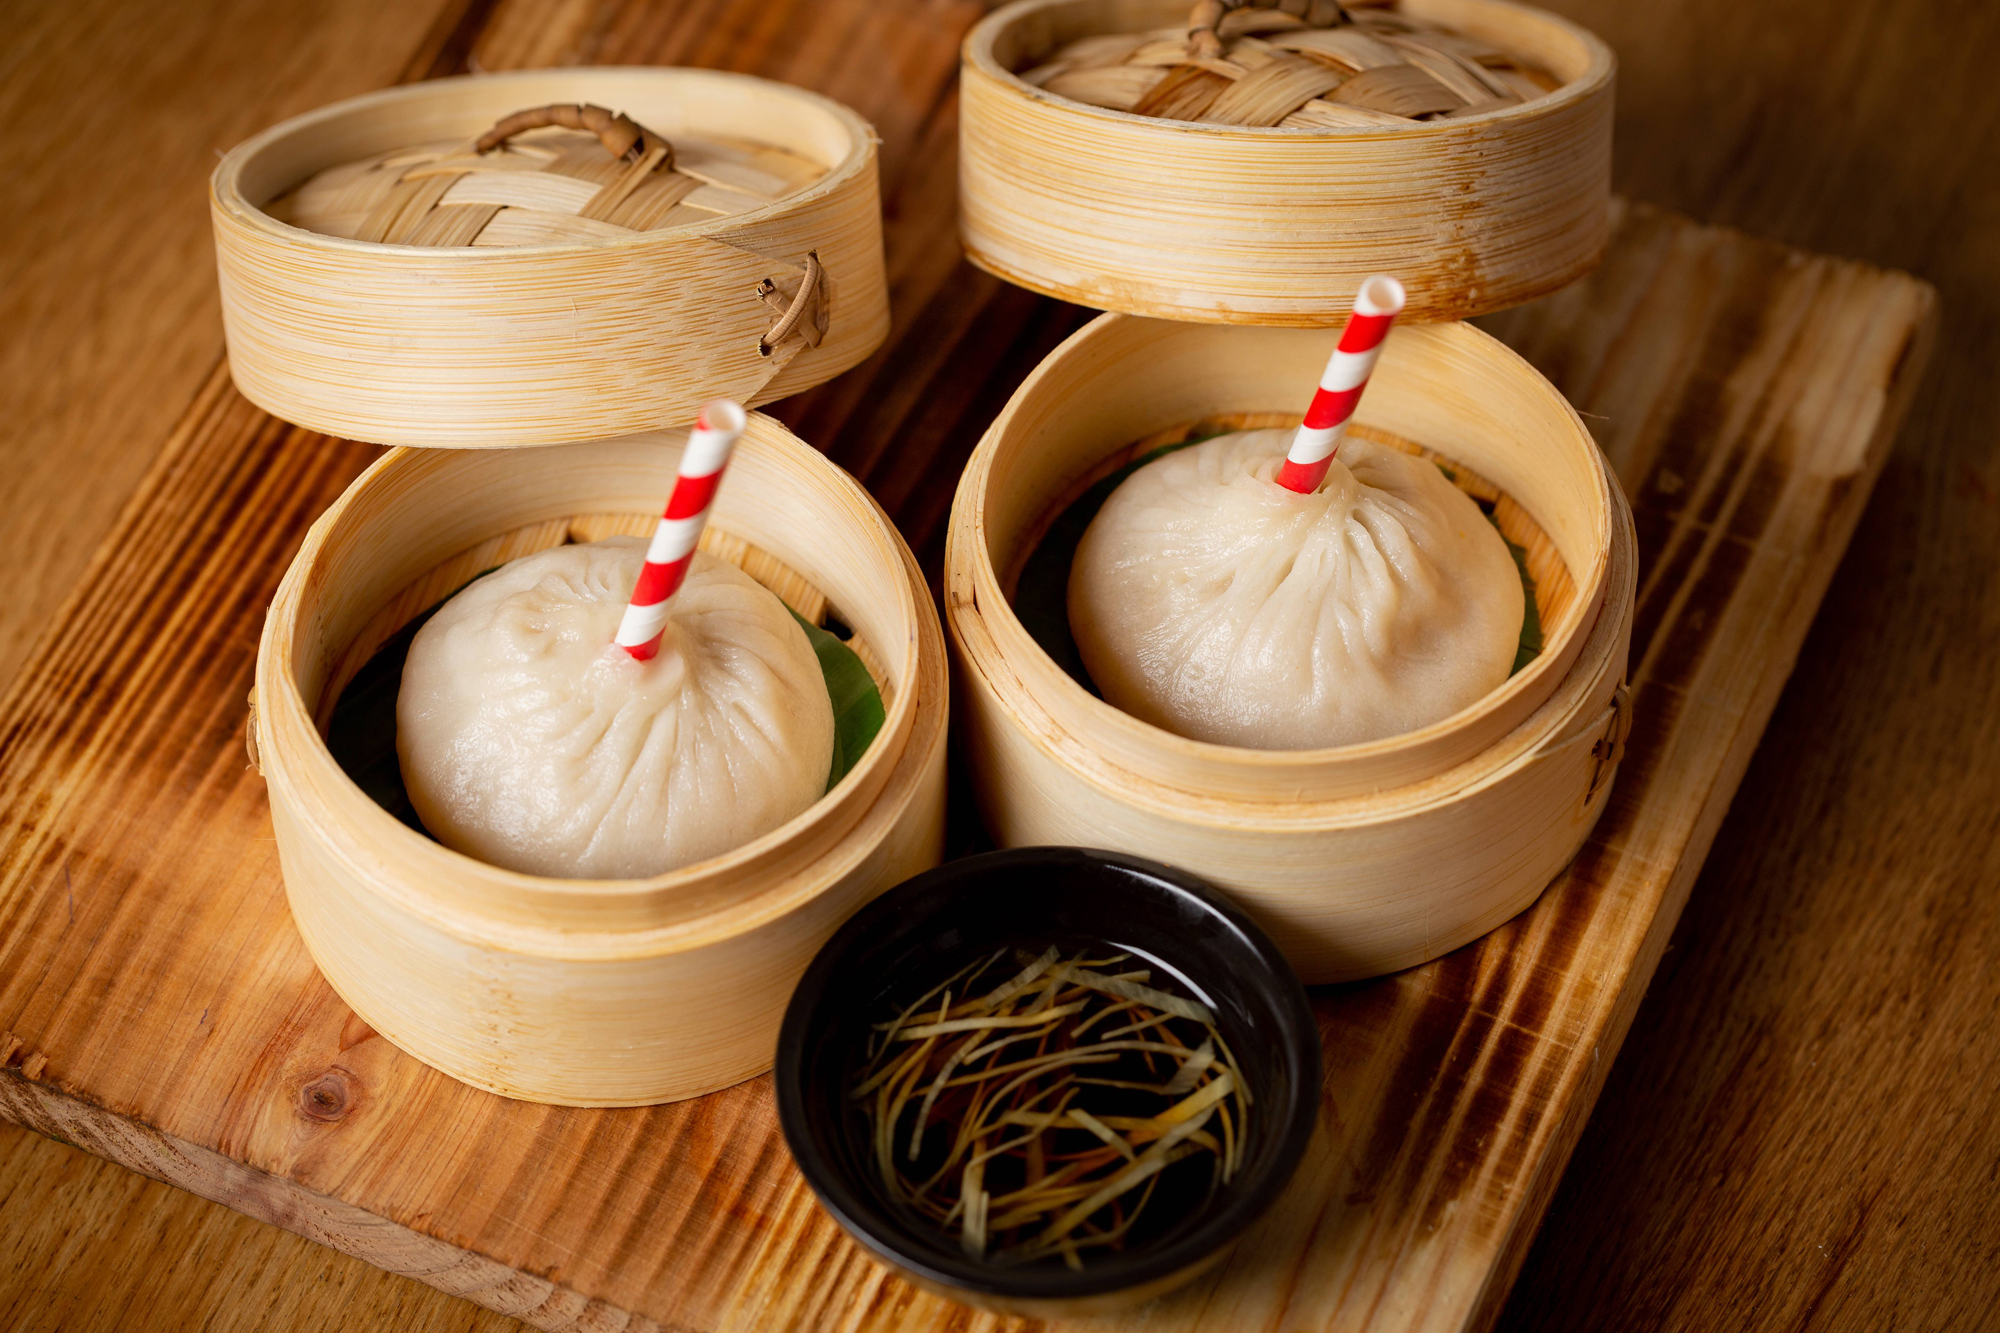 Red Farm london restaurants group dining food soup dumplings